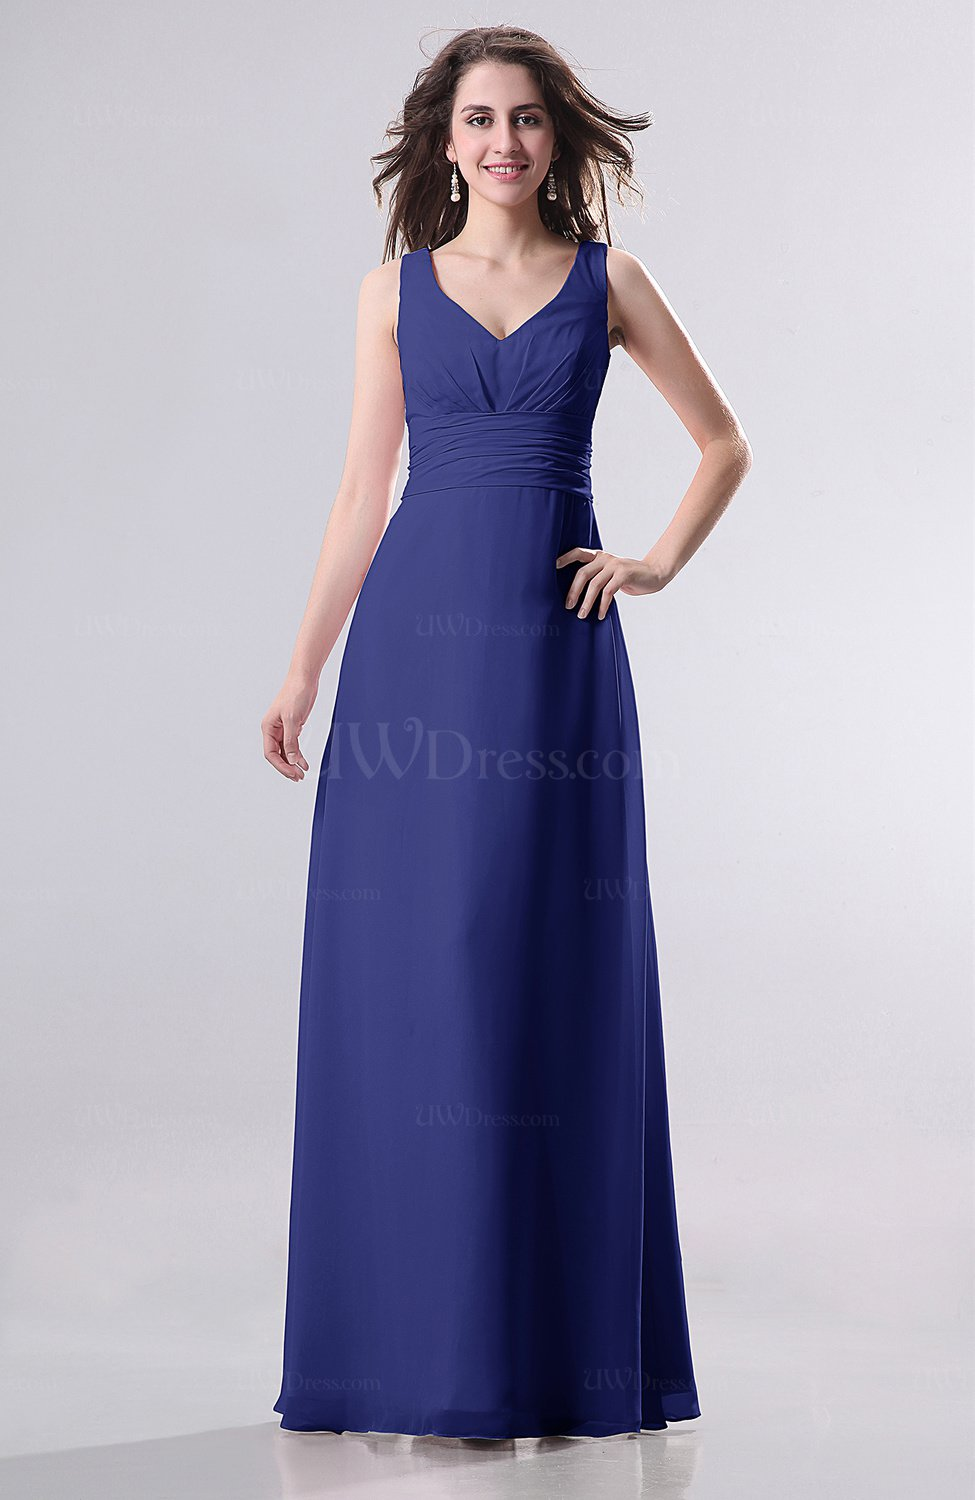 Electric Blue Wedding Guest Dresses : Electric blue simple empire sleeveless zip up ruching wedding guest